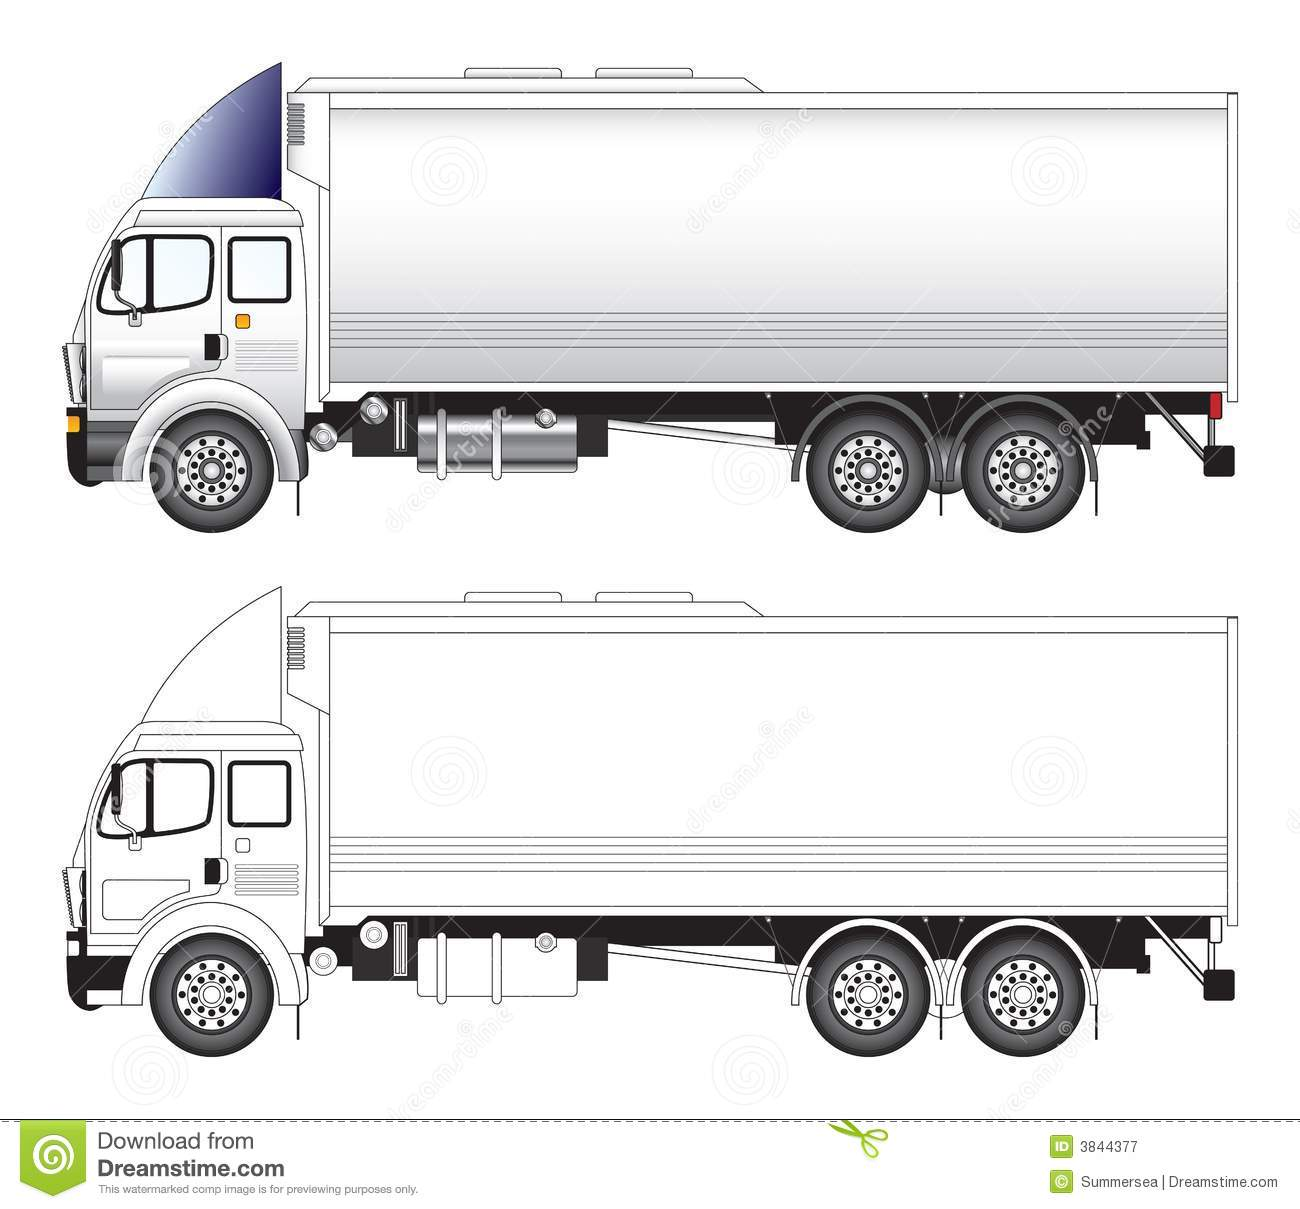 Royalty Free Stock Photography Long Truck Vector Illustration Image3844377 on semi truck guard